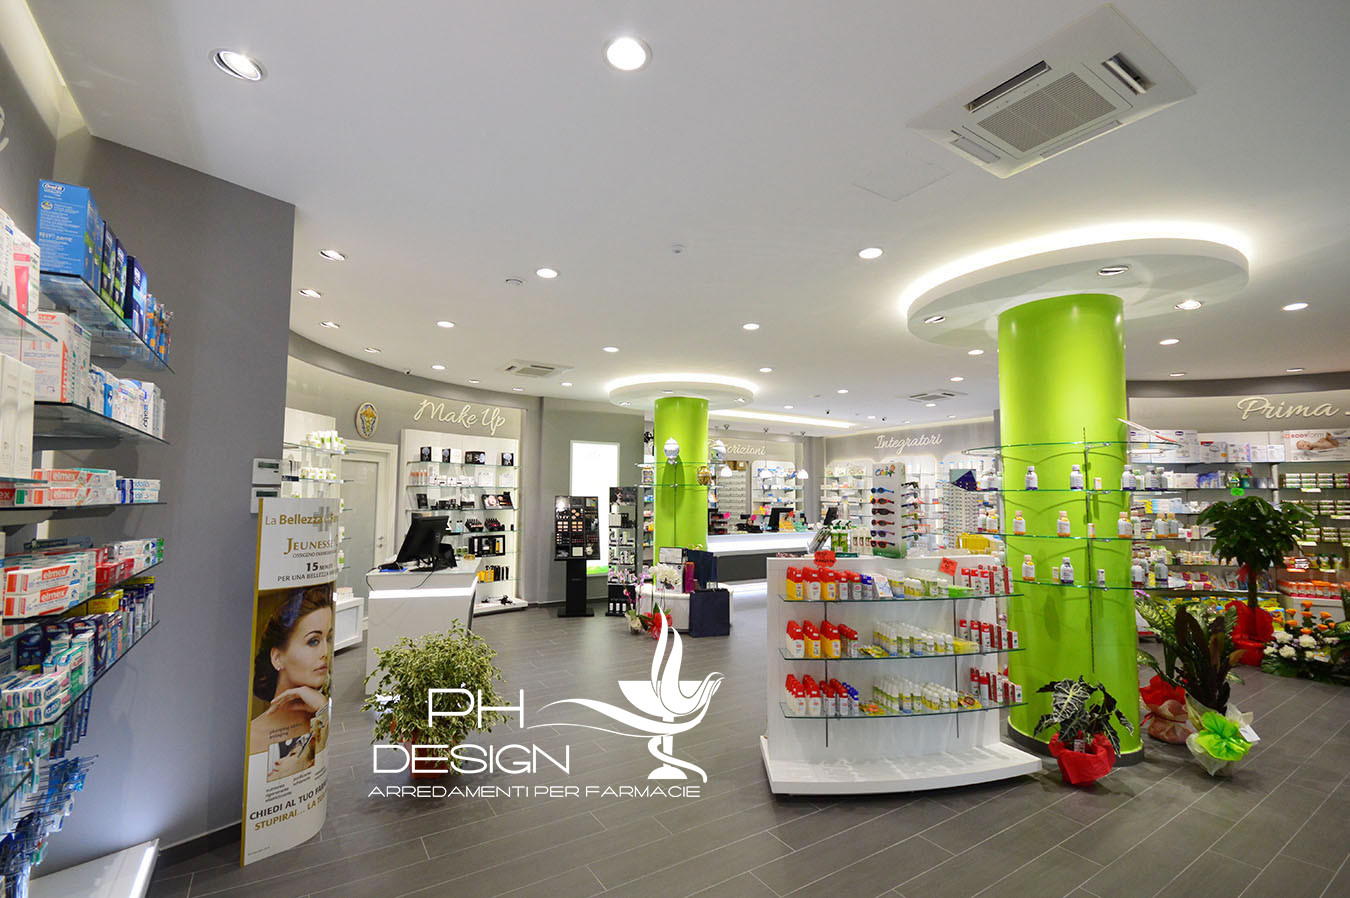 PH DESIGN DESIGN E ARREDAMENTI FARMACIE